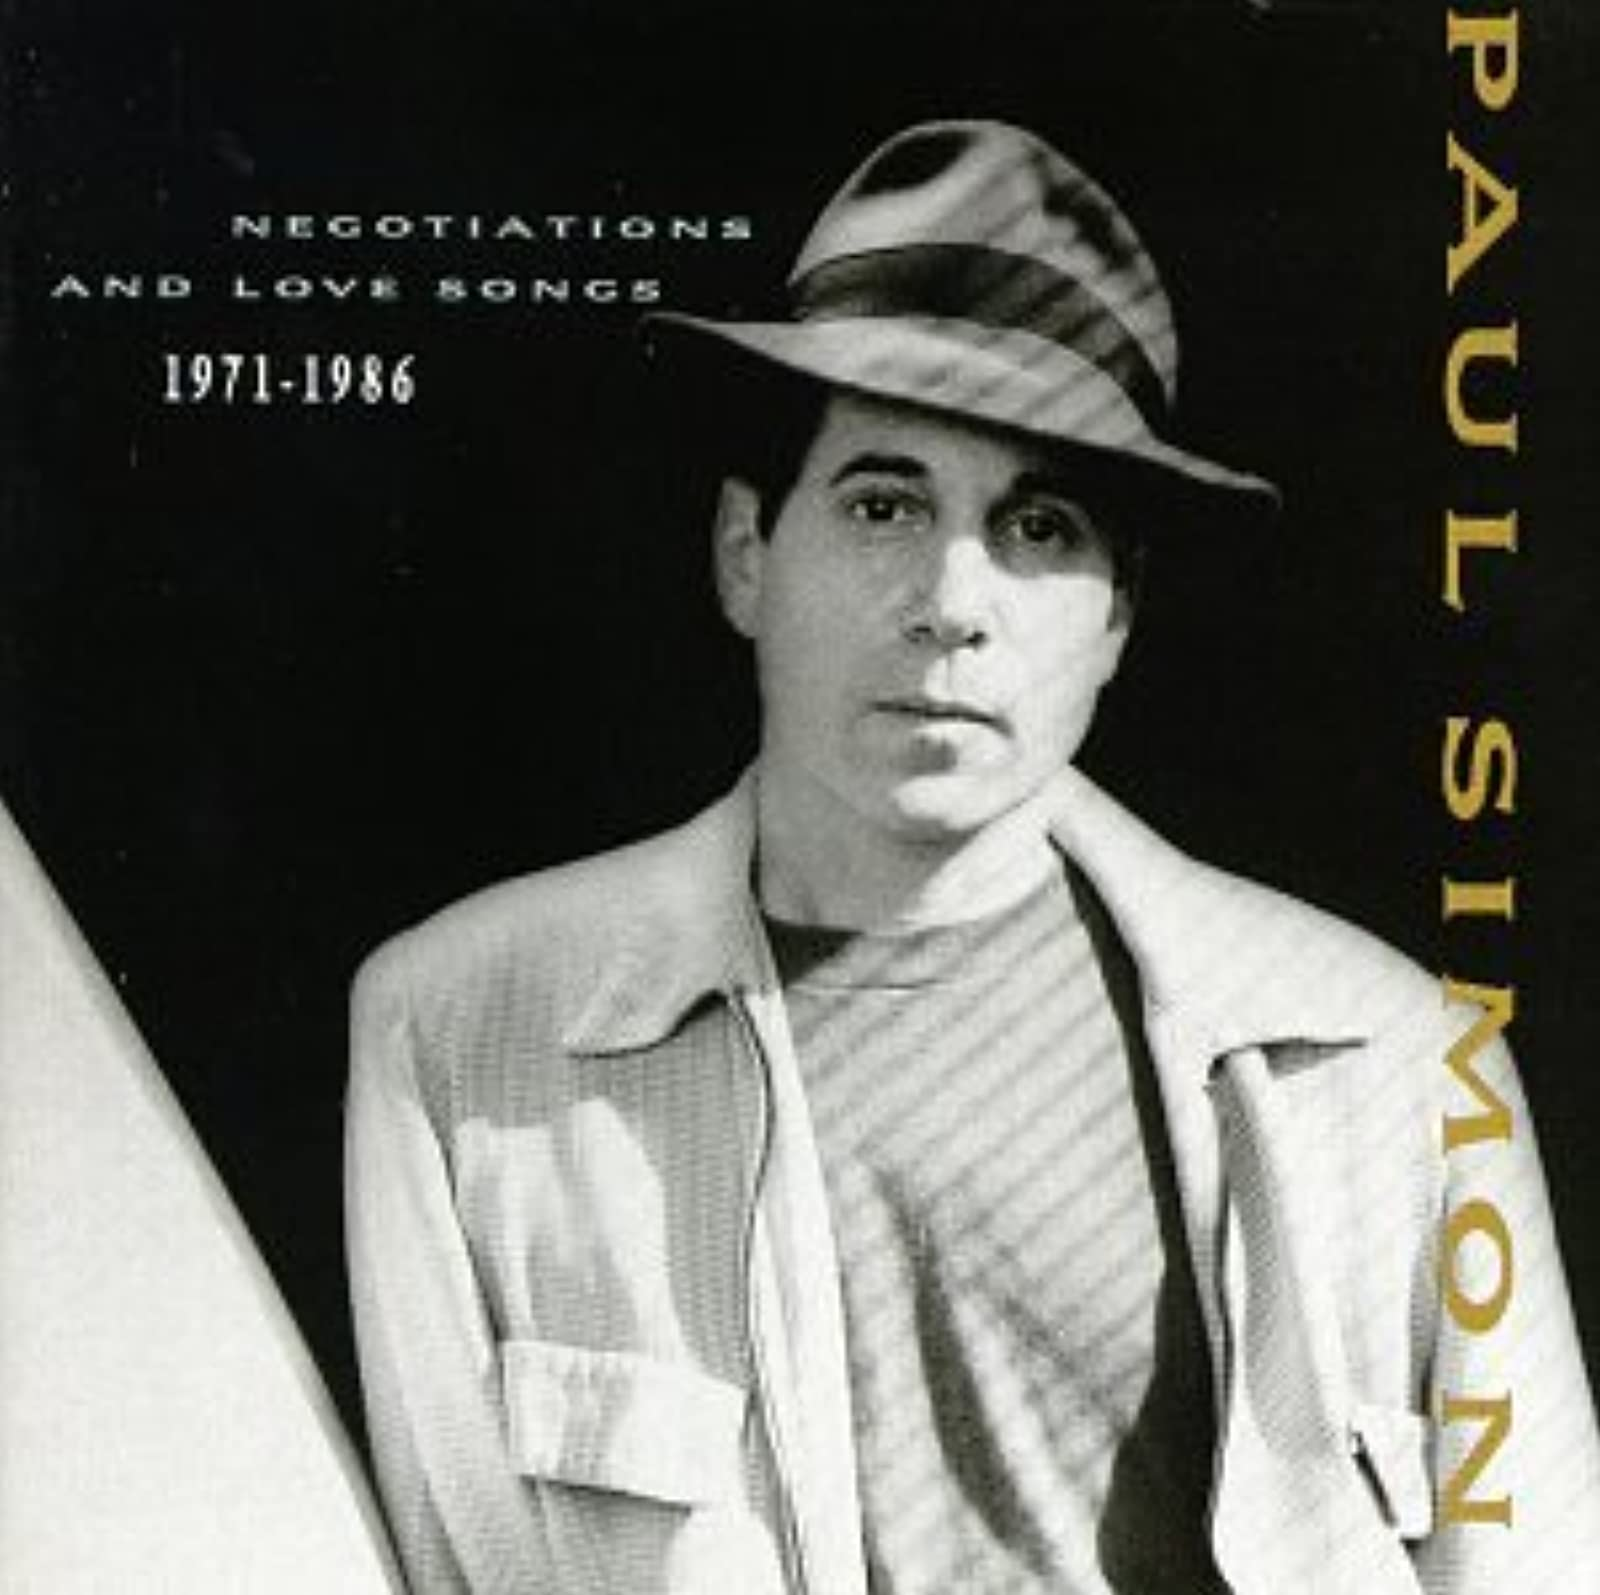 Negotiations And Love Songs 1971-1986 By Paul Simon On Audio CD Album